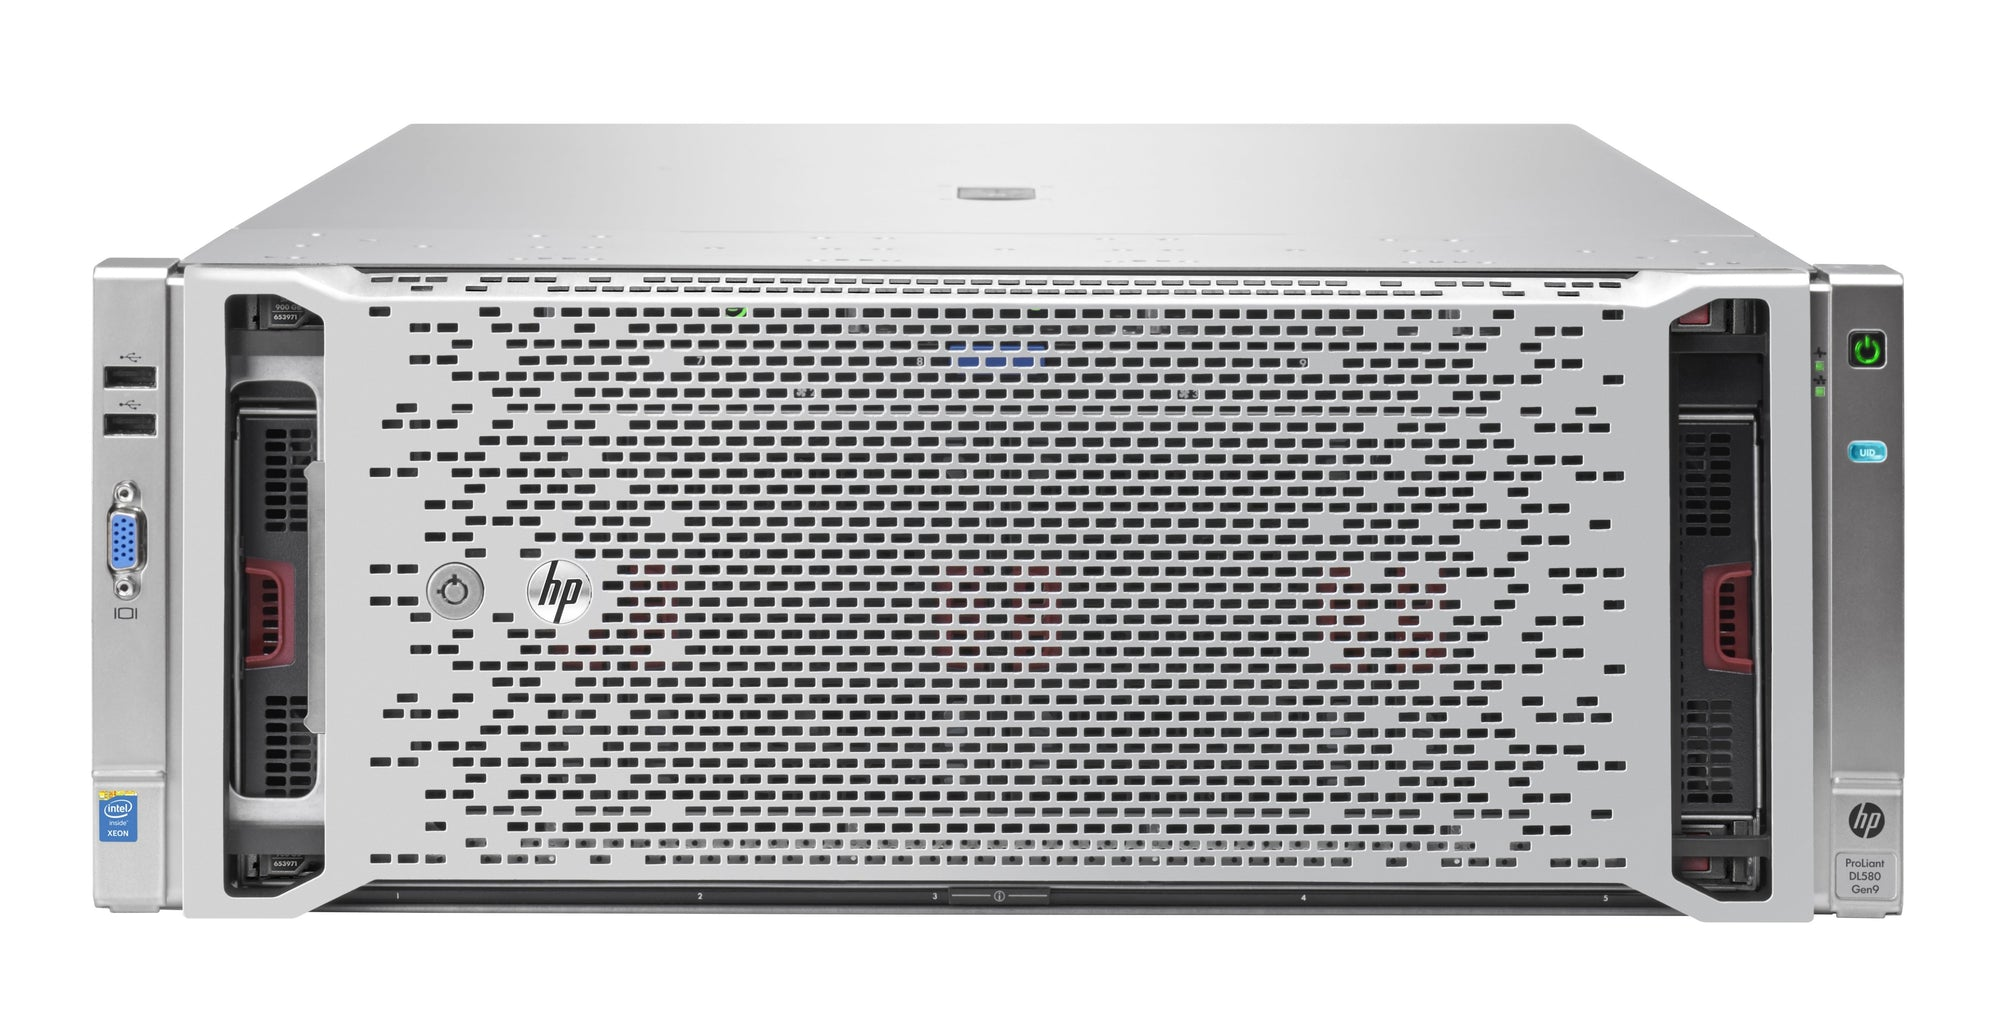 HPE ProLiant DL580 Gen9 CTO Server